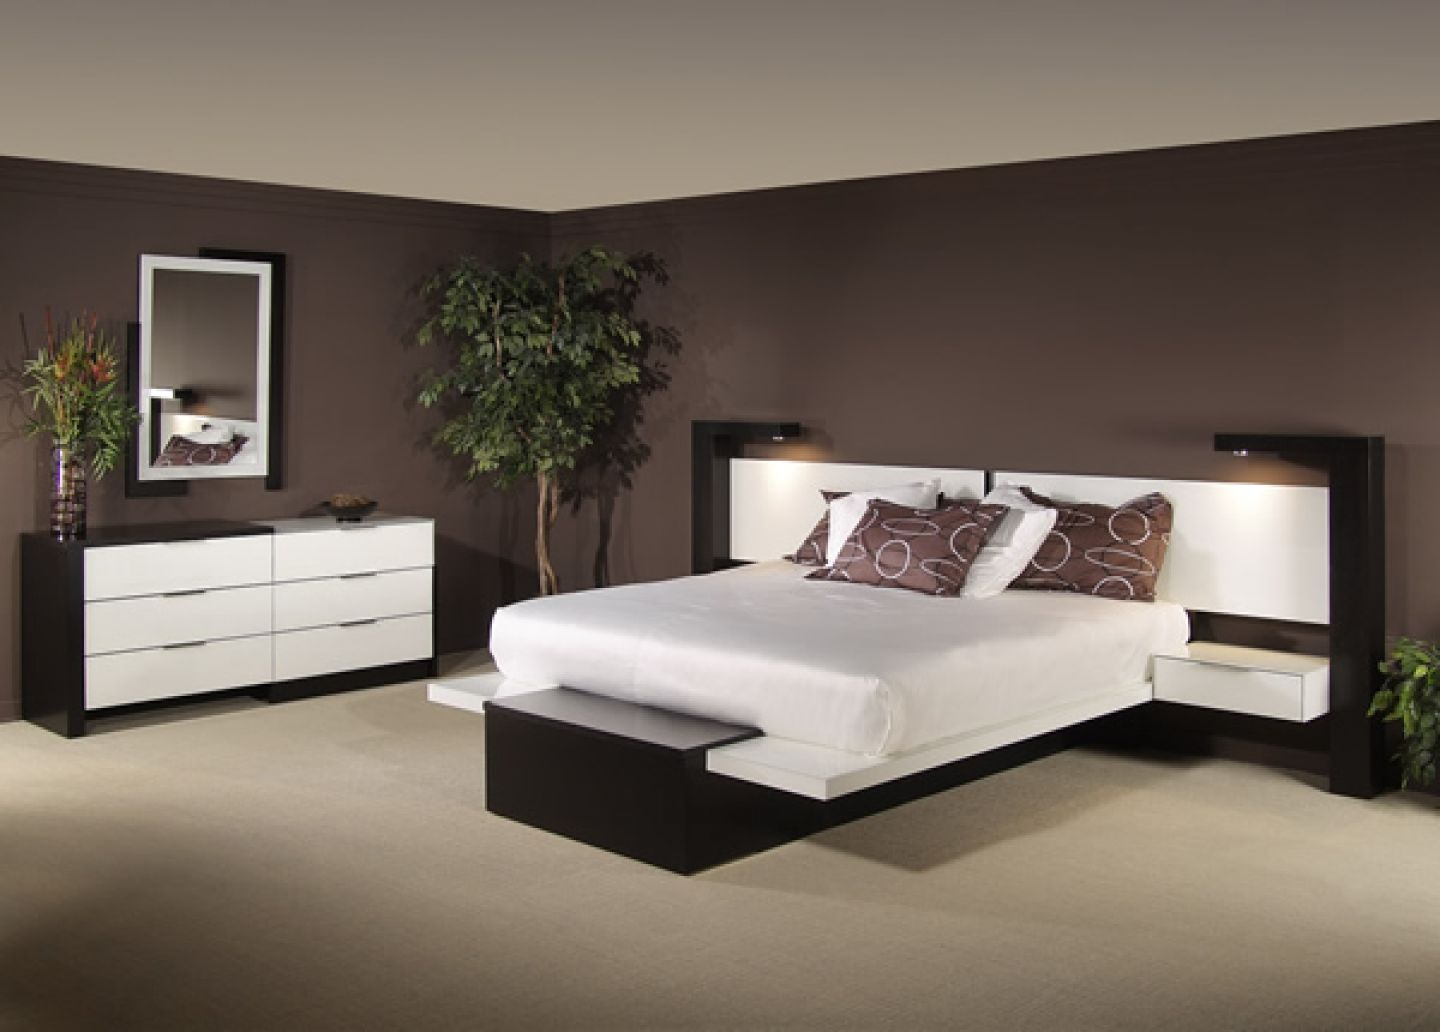 Modern Bedroom Designs 2014 contemporary furniture designs ideas | bedroom furniture